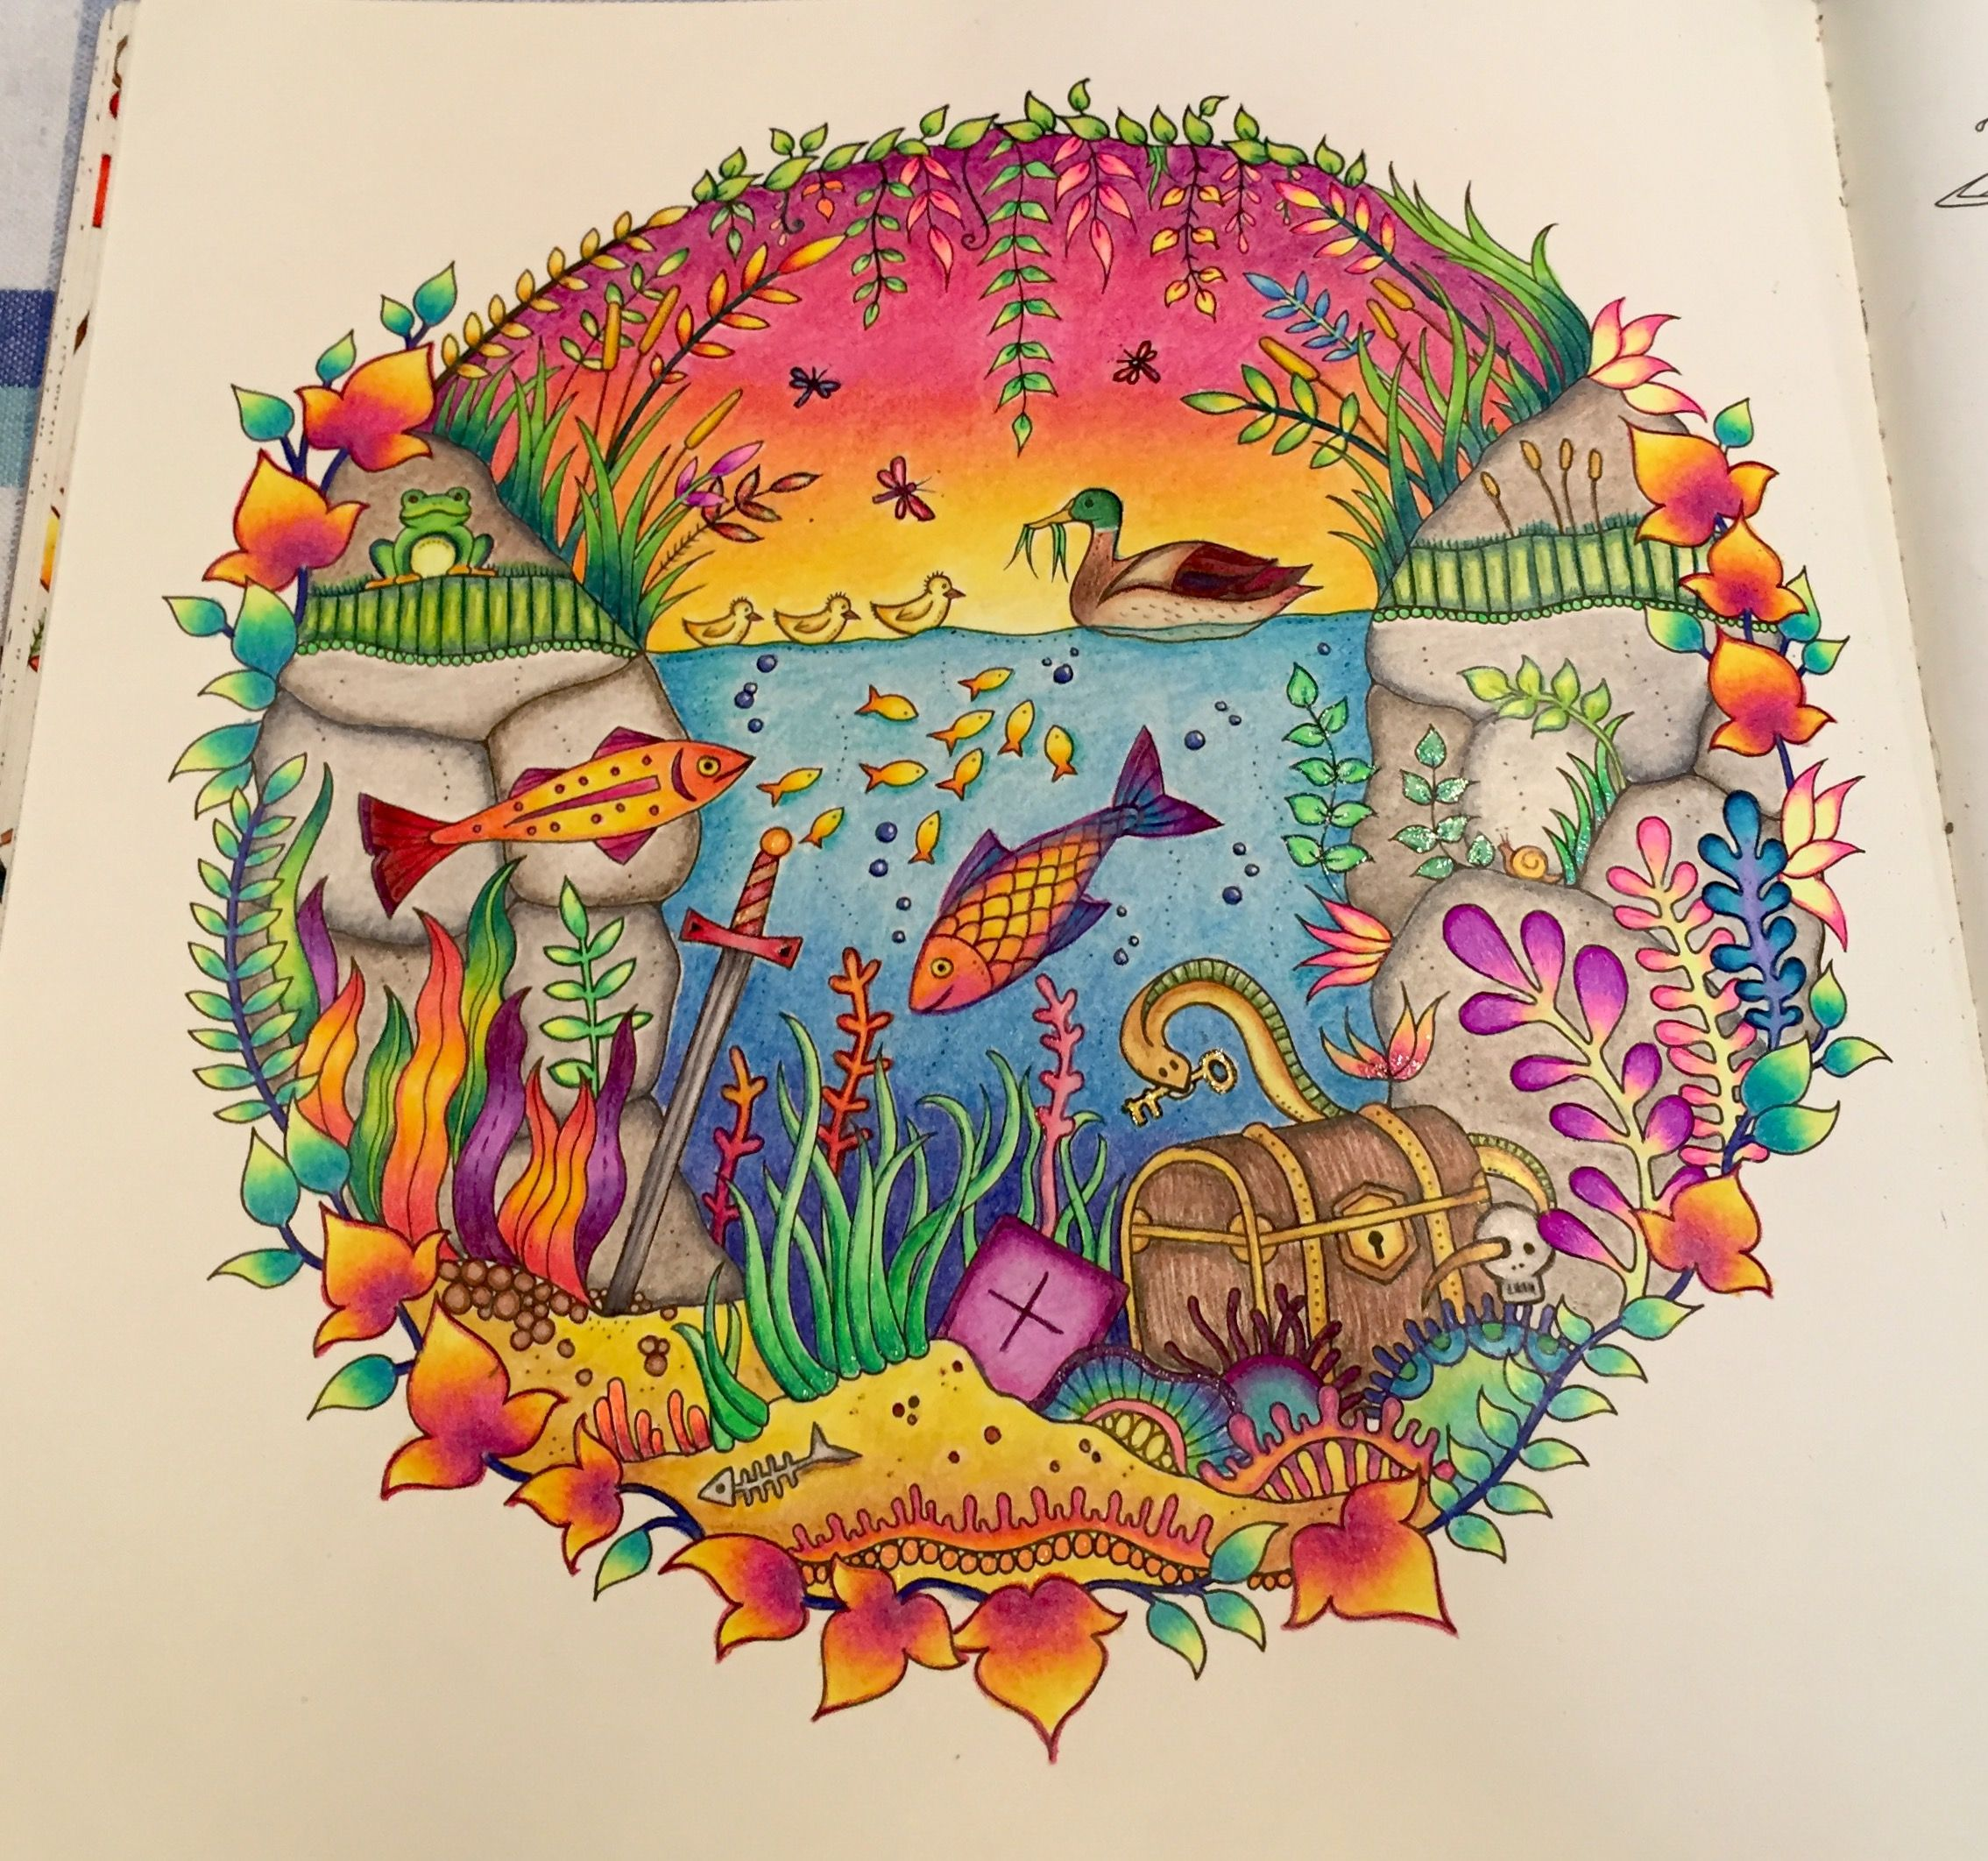 Everyone Loves Coloring R Coloring Enchanted Forest Coloring Book Forest Coloring Book Enchanted Forest Coloring